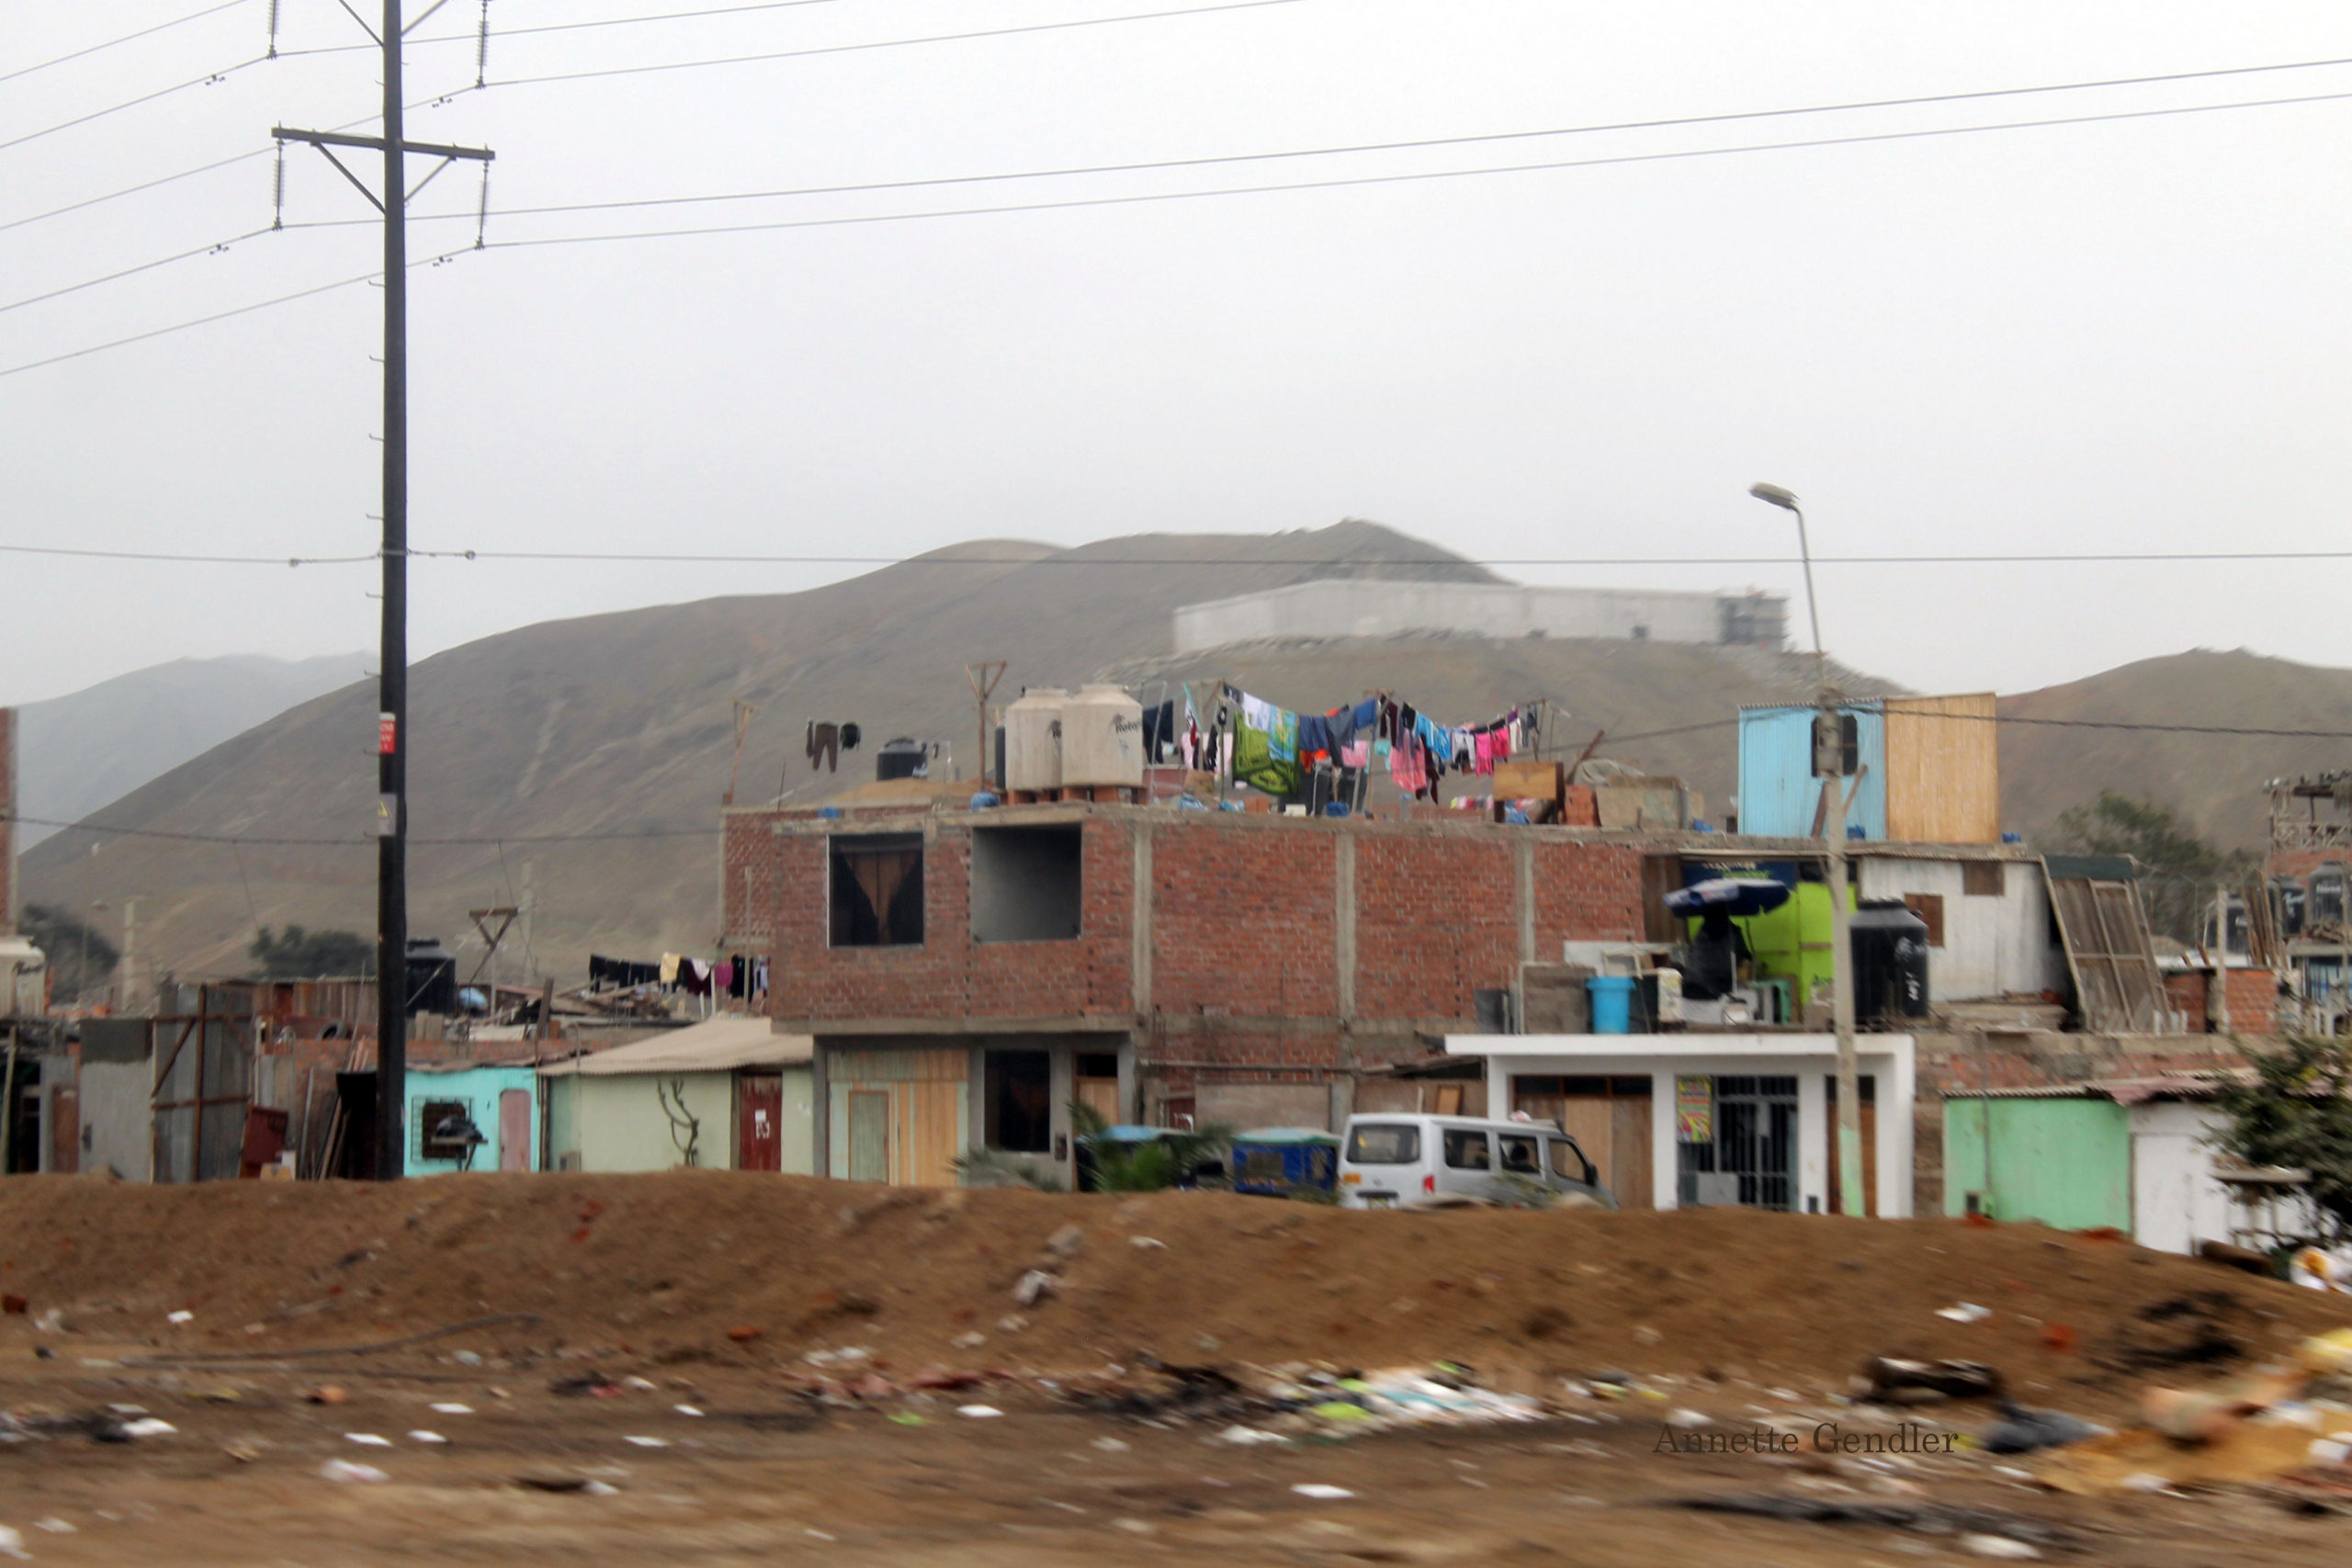 Cinder block construction in shanty town with laundry lines and water containers on roofs